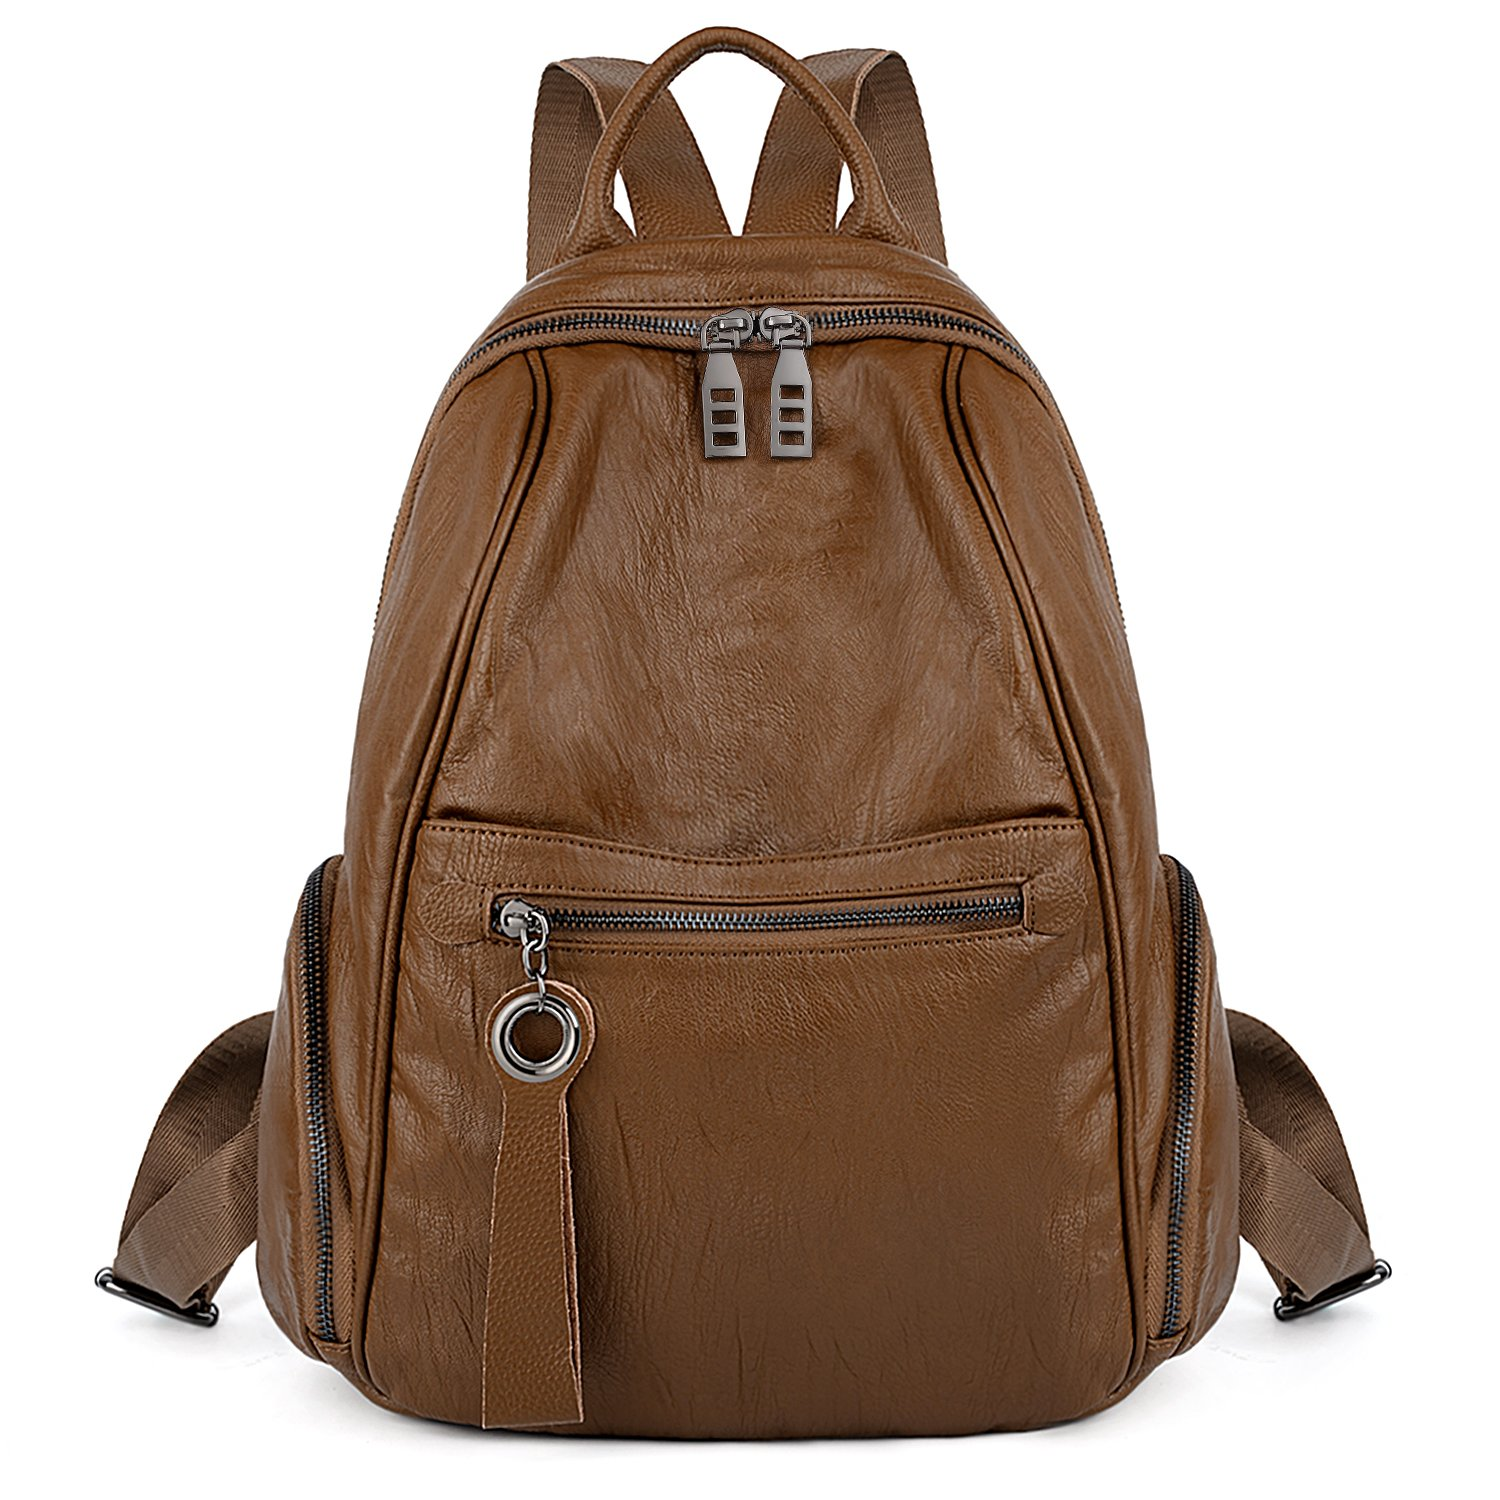 UTO Women Backpack Purse PU Washed Leather Zipper Pockets Ladies Daily Rucksack Shoulder Bag CA 18000417-2ca